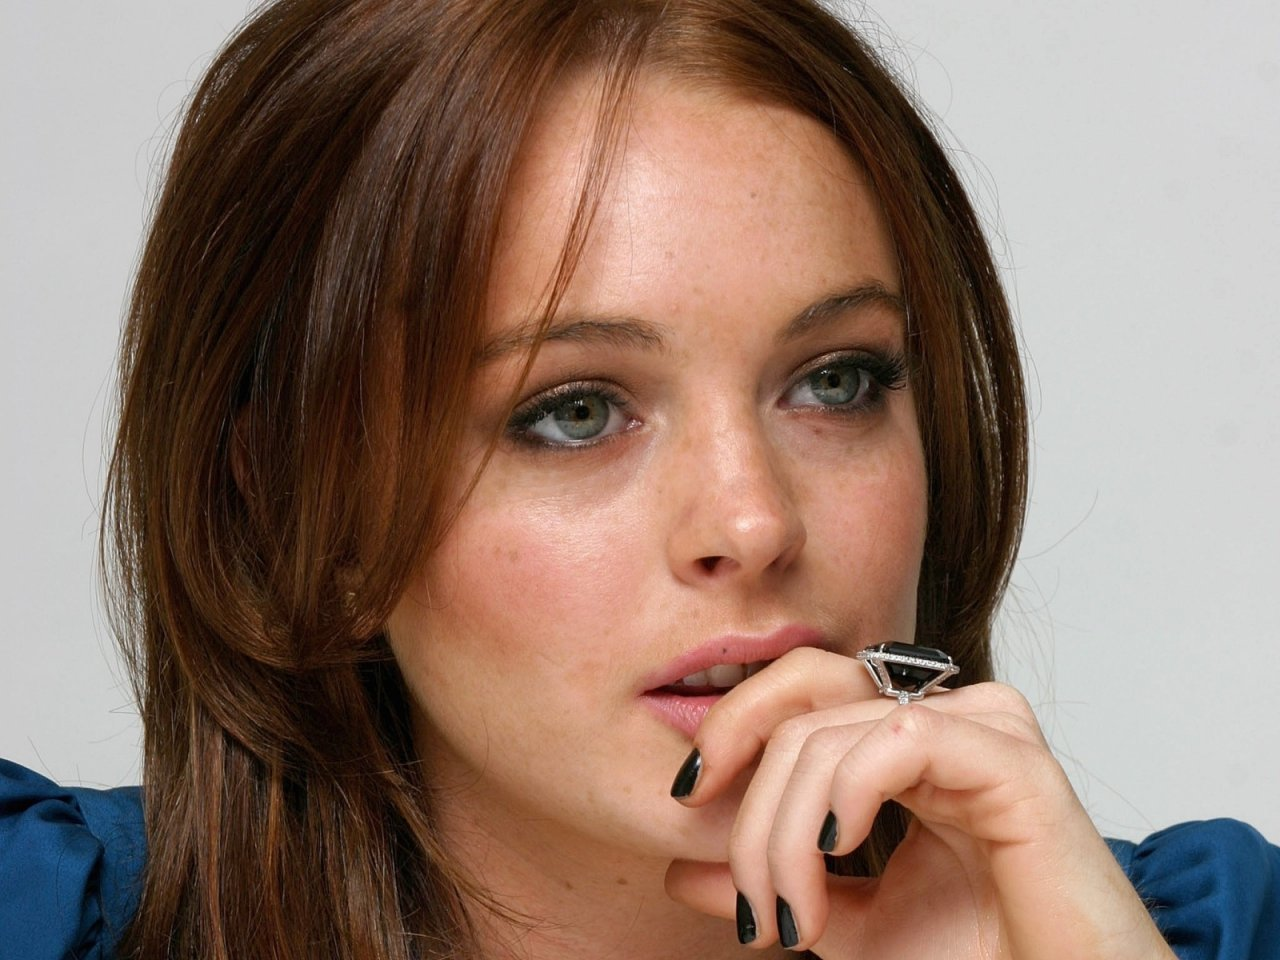 lindsay lohan young images